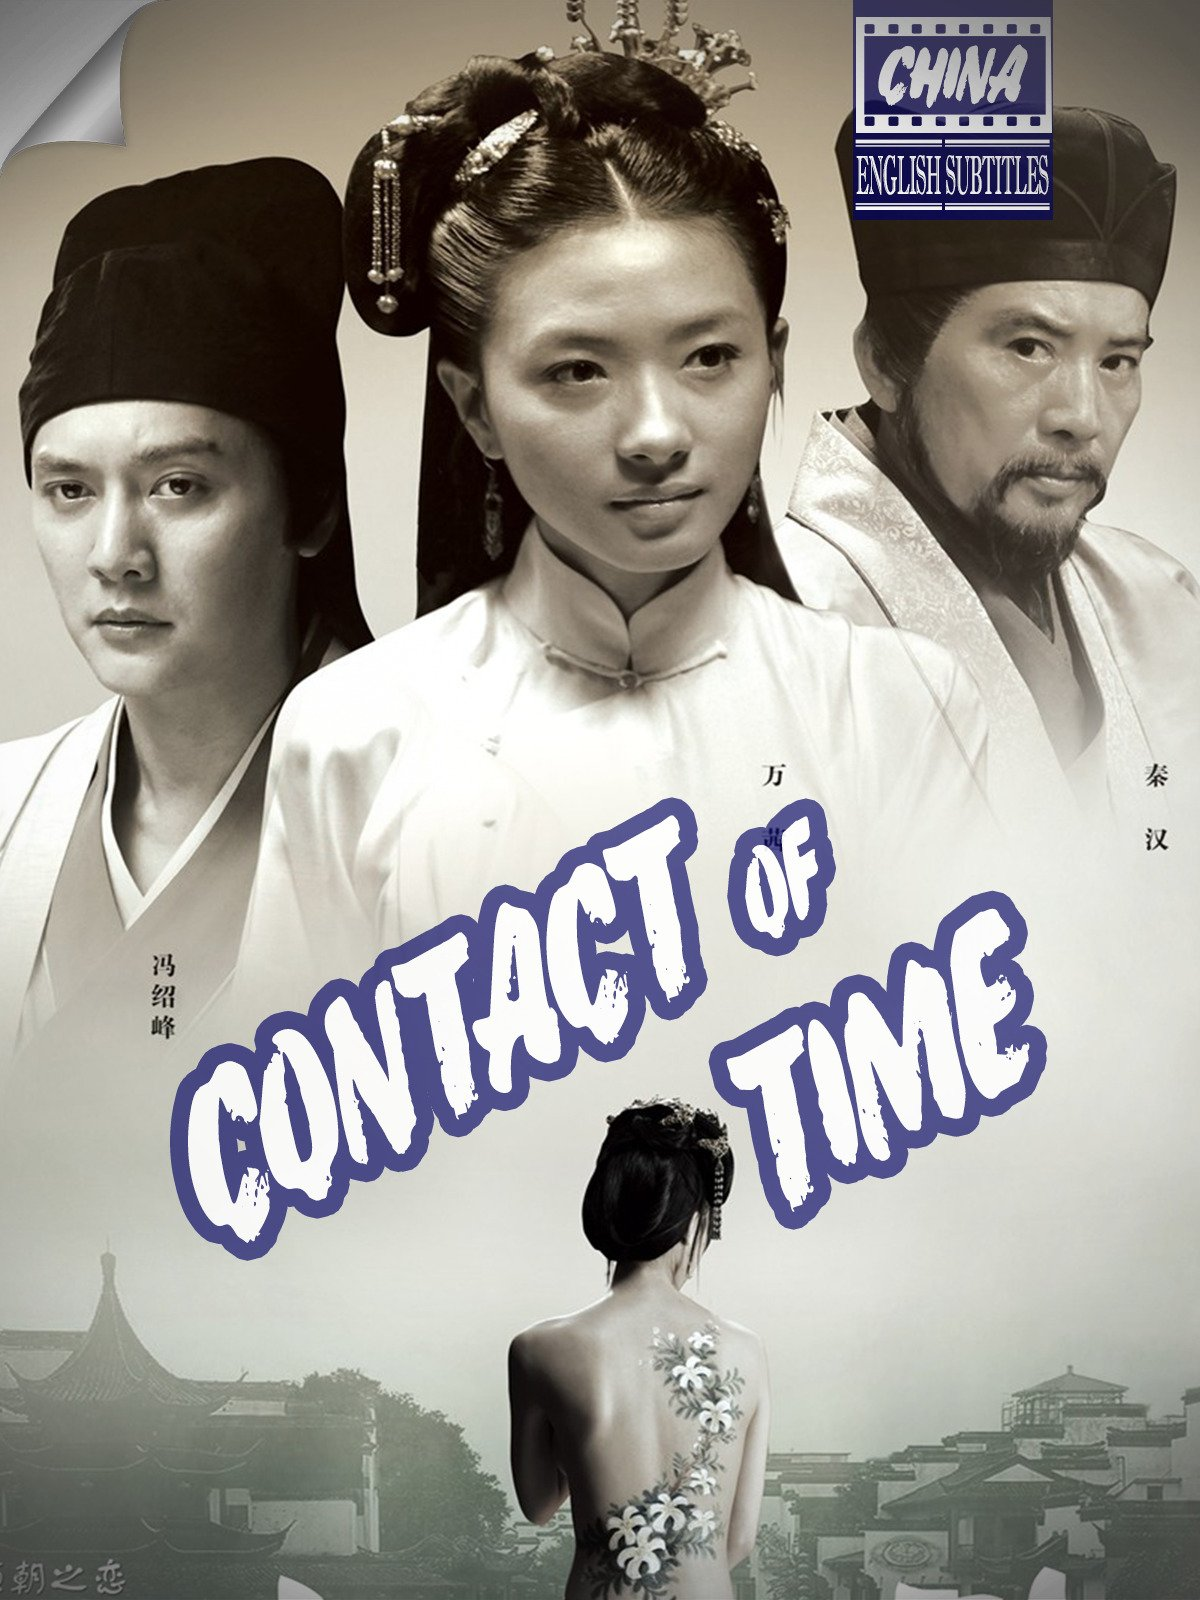 Contact of Time (english subtitles) China